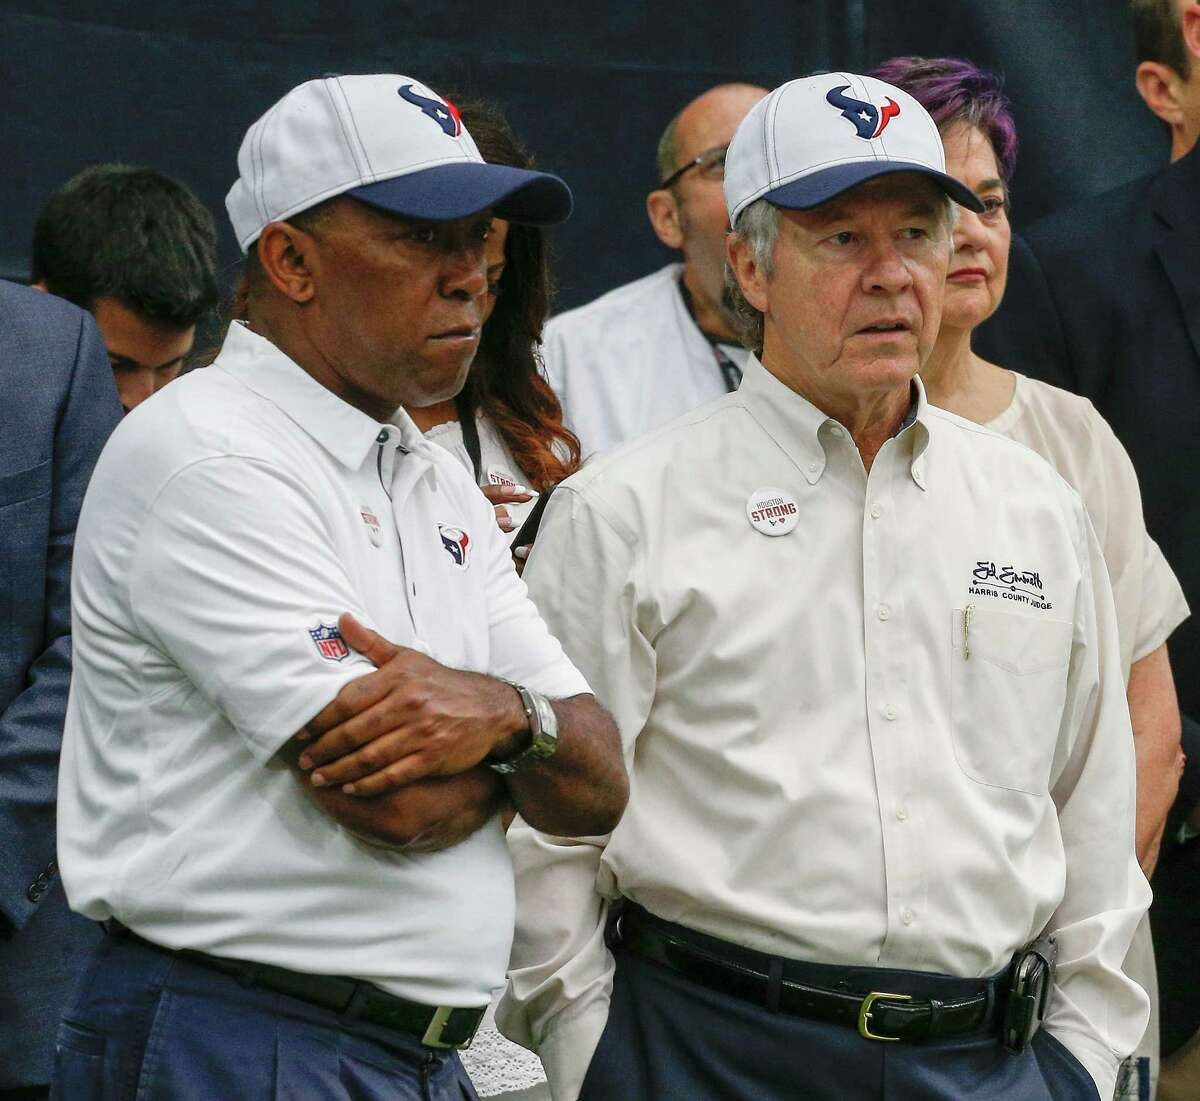 Houston Mayor Sylvester Turner, left, and Harris County Judge Ed Emmett watch from the sidelines before the Houston Texans played the Jacksonville Jaguars at NRG Stadium on Sept. 10. (Photo by Bob Levey/Getty Images)